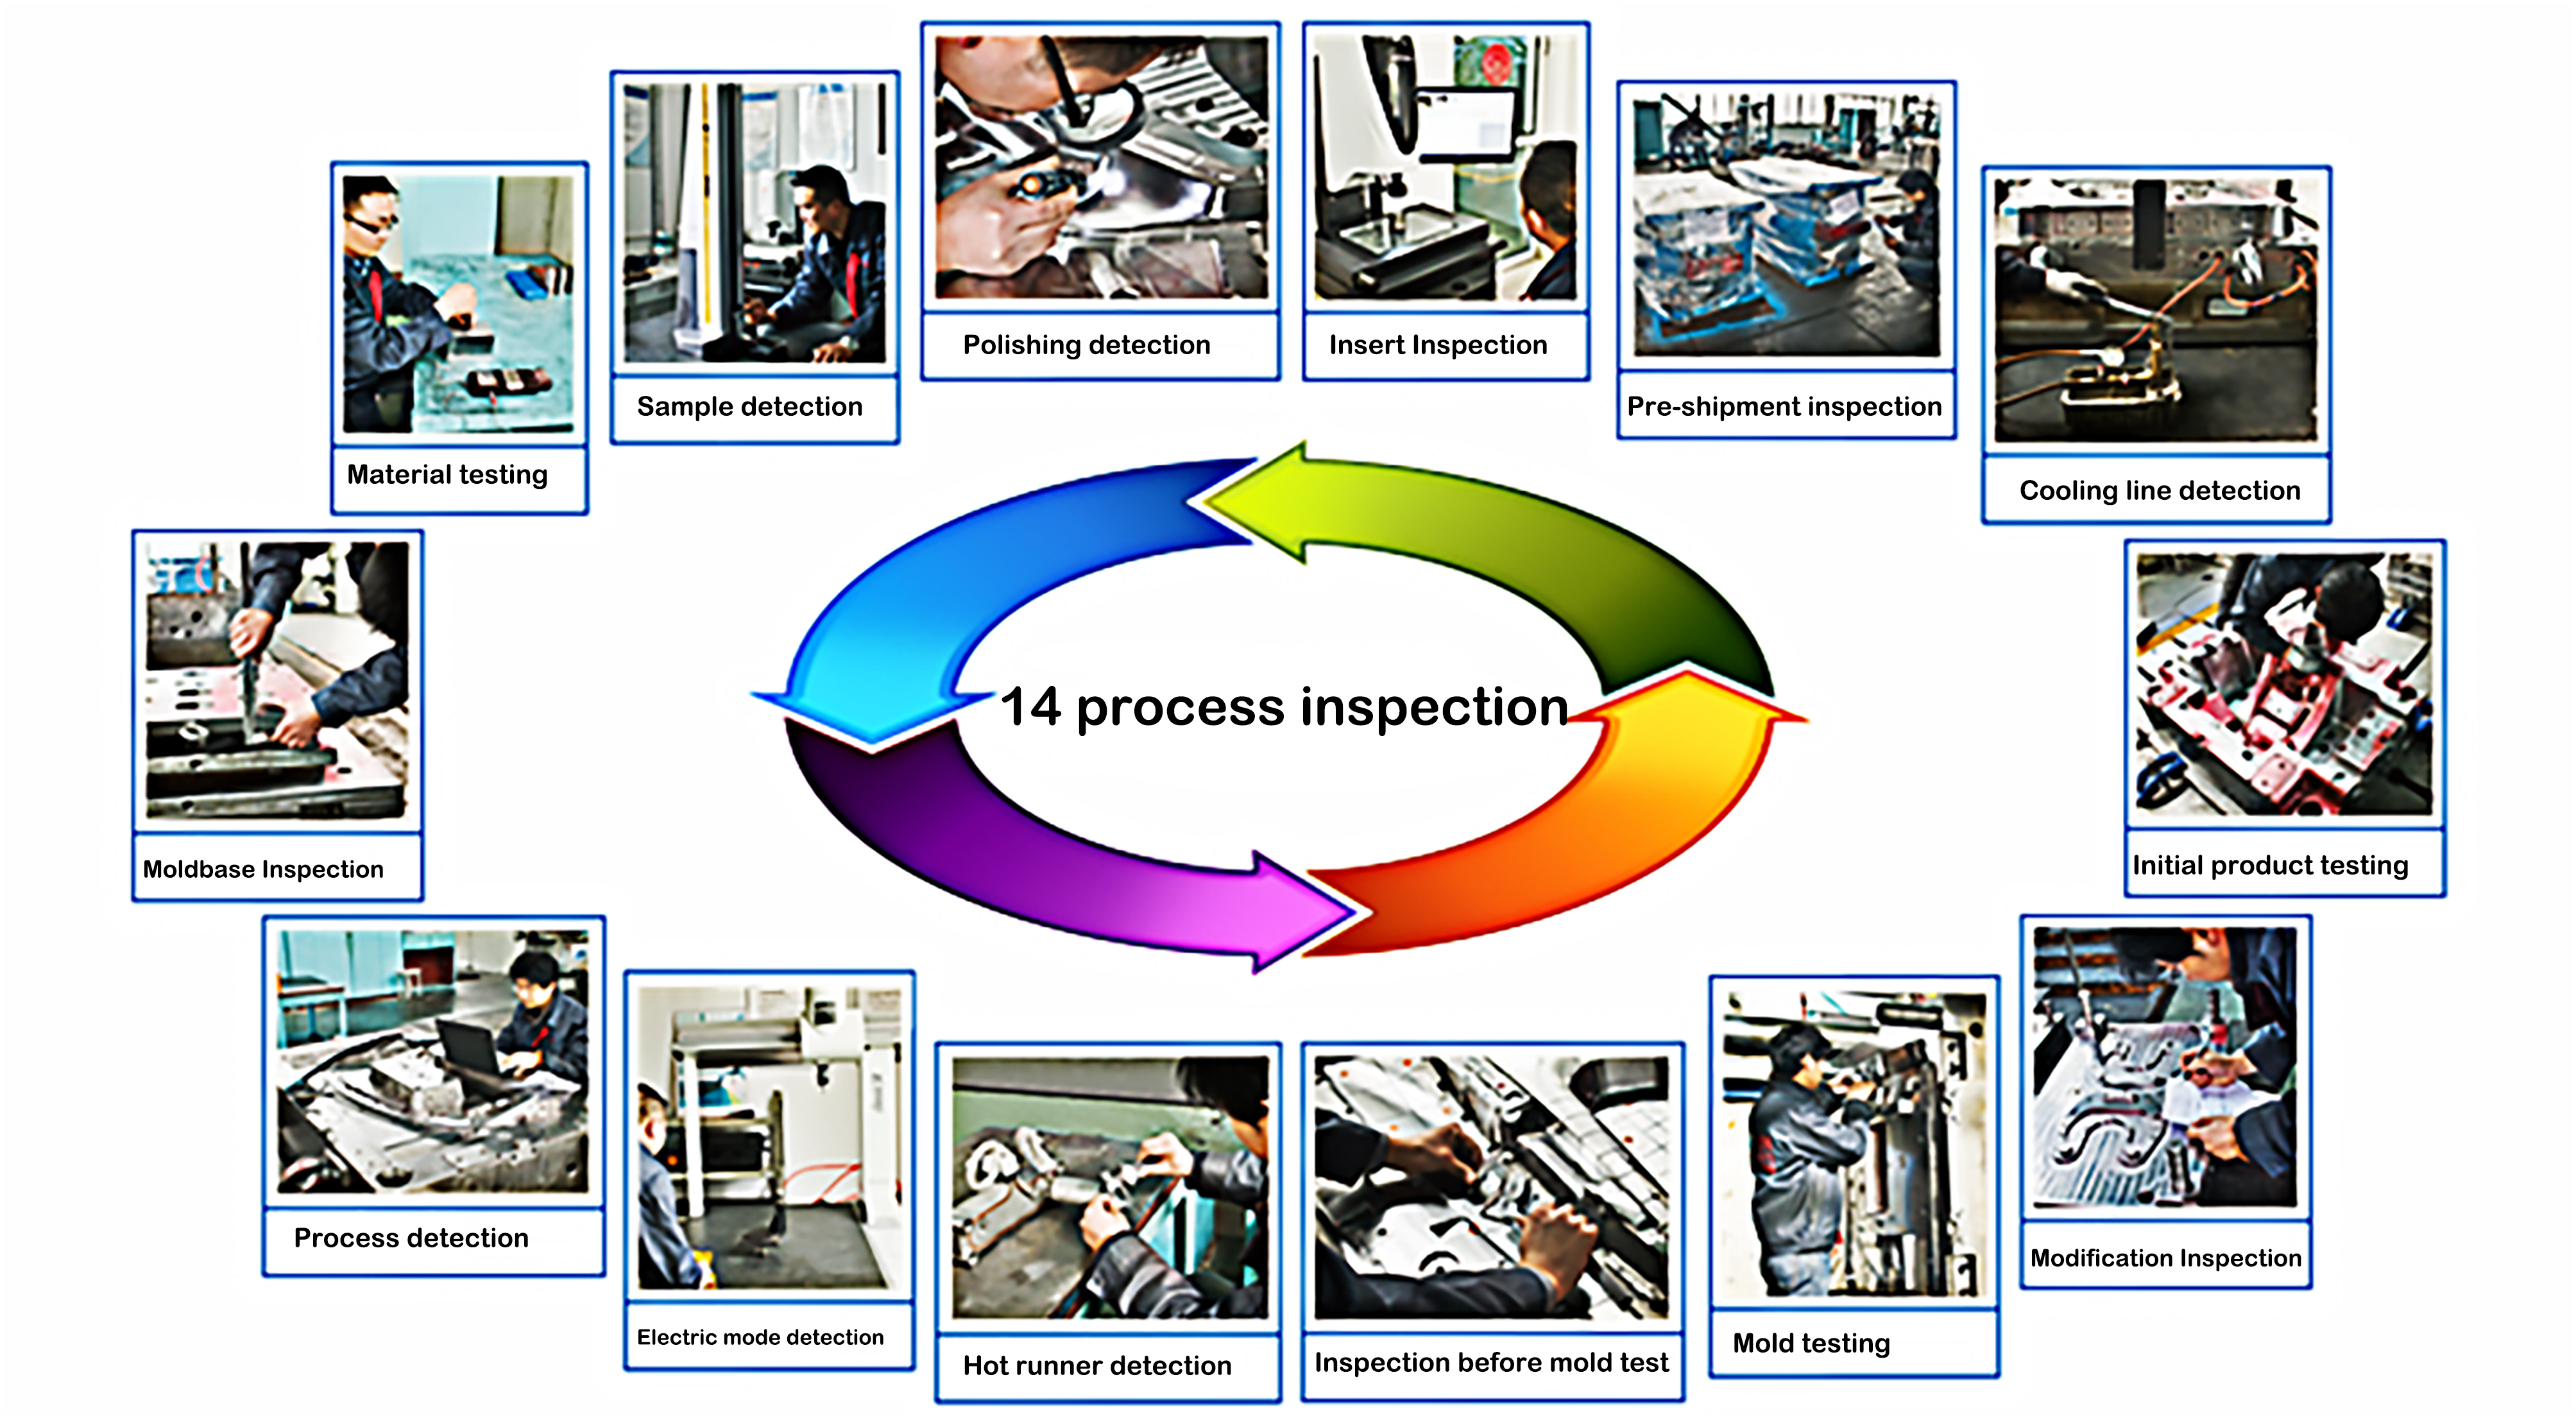 14 Processing Inspections